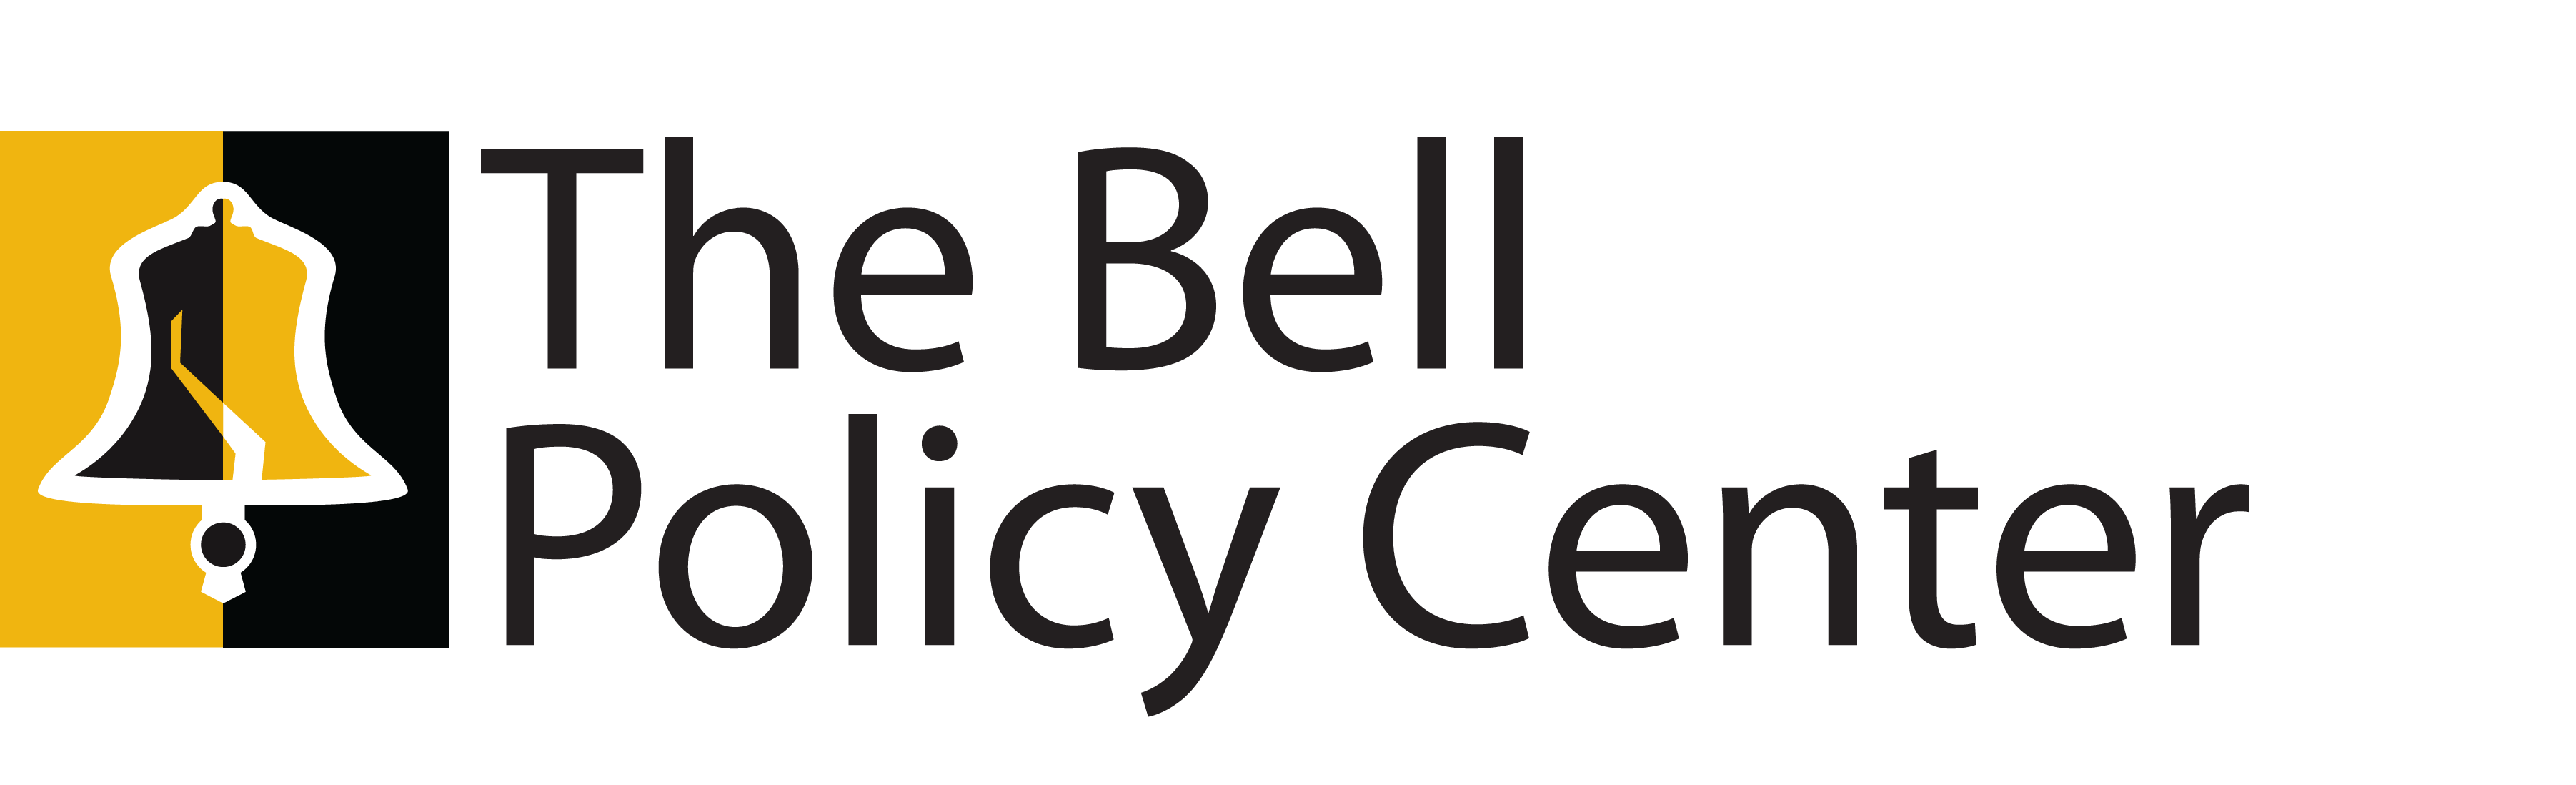 The Bell Policy Center